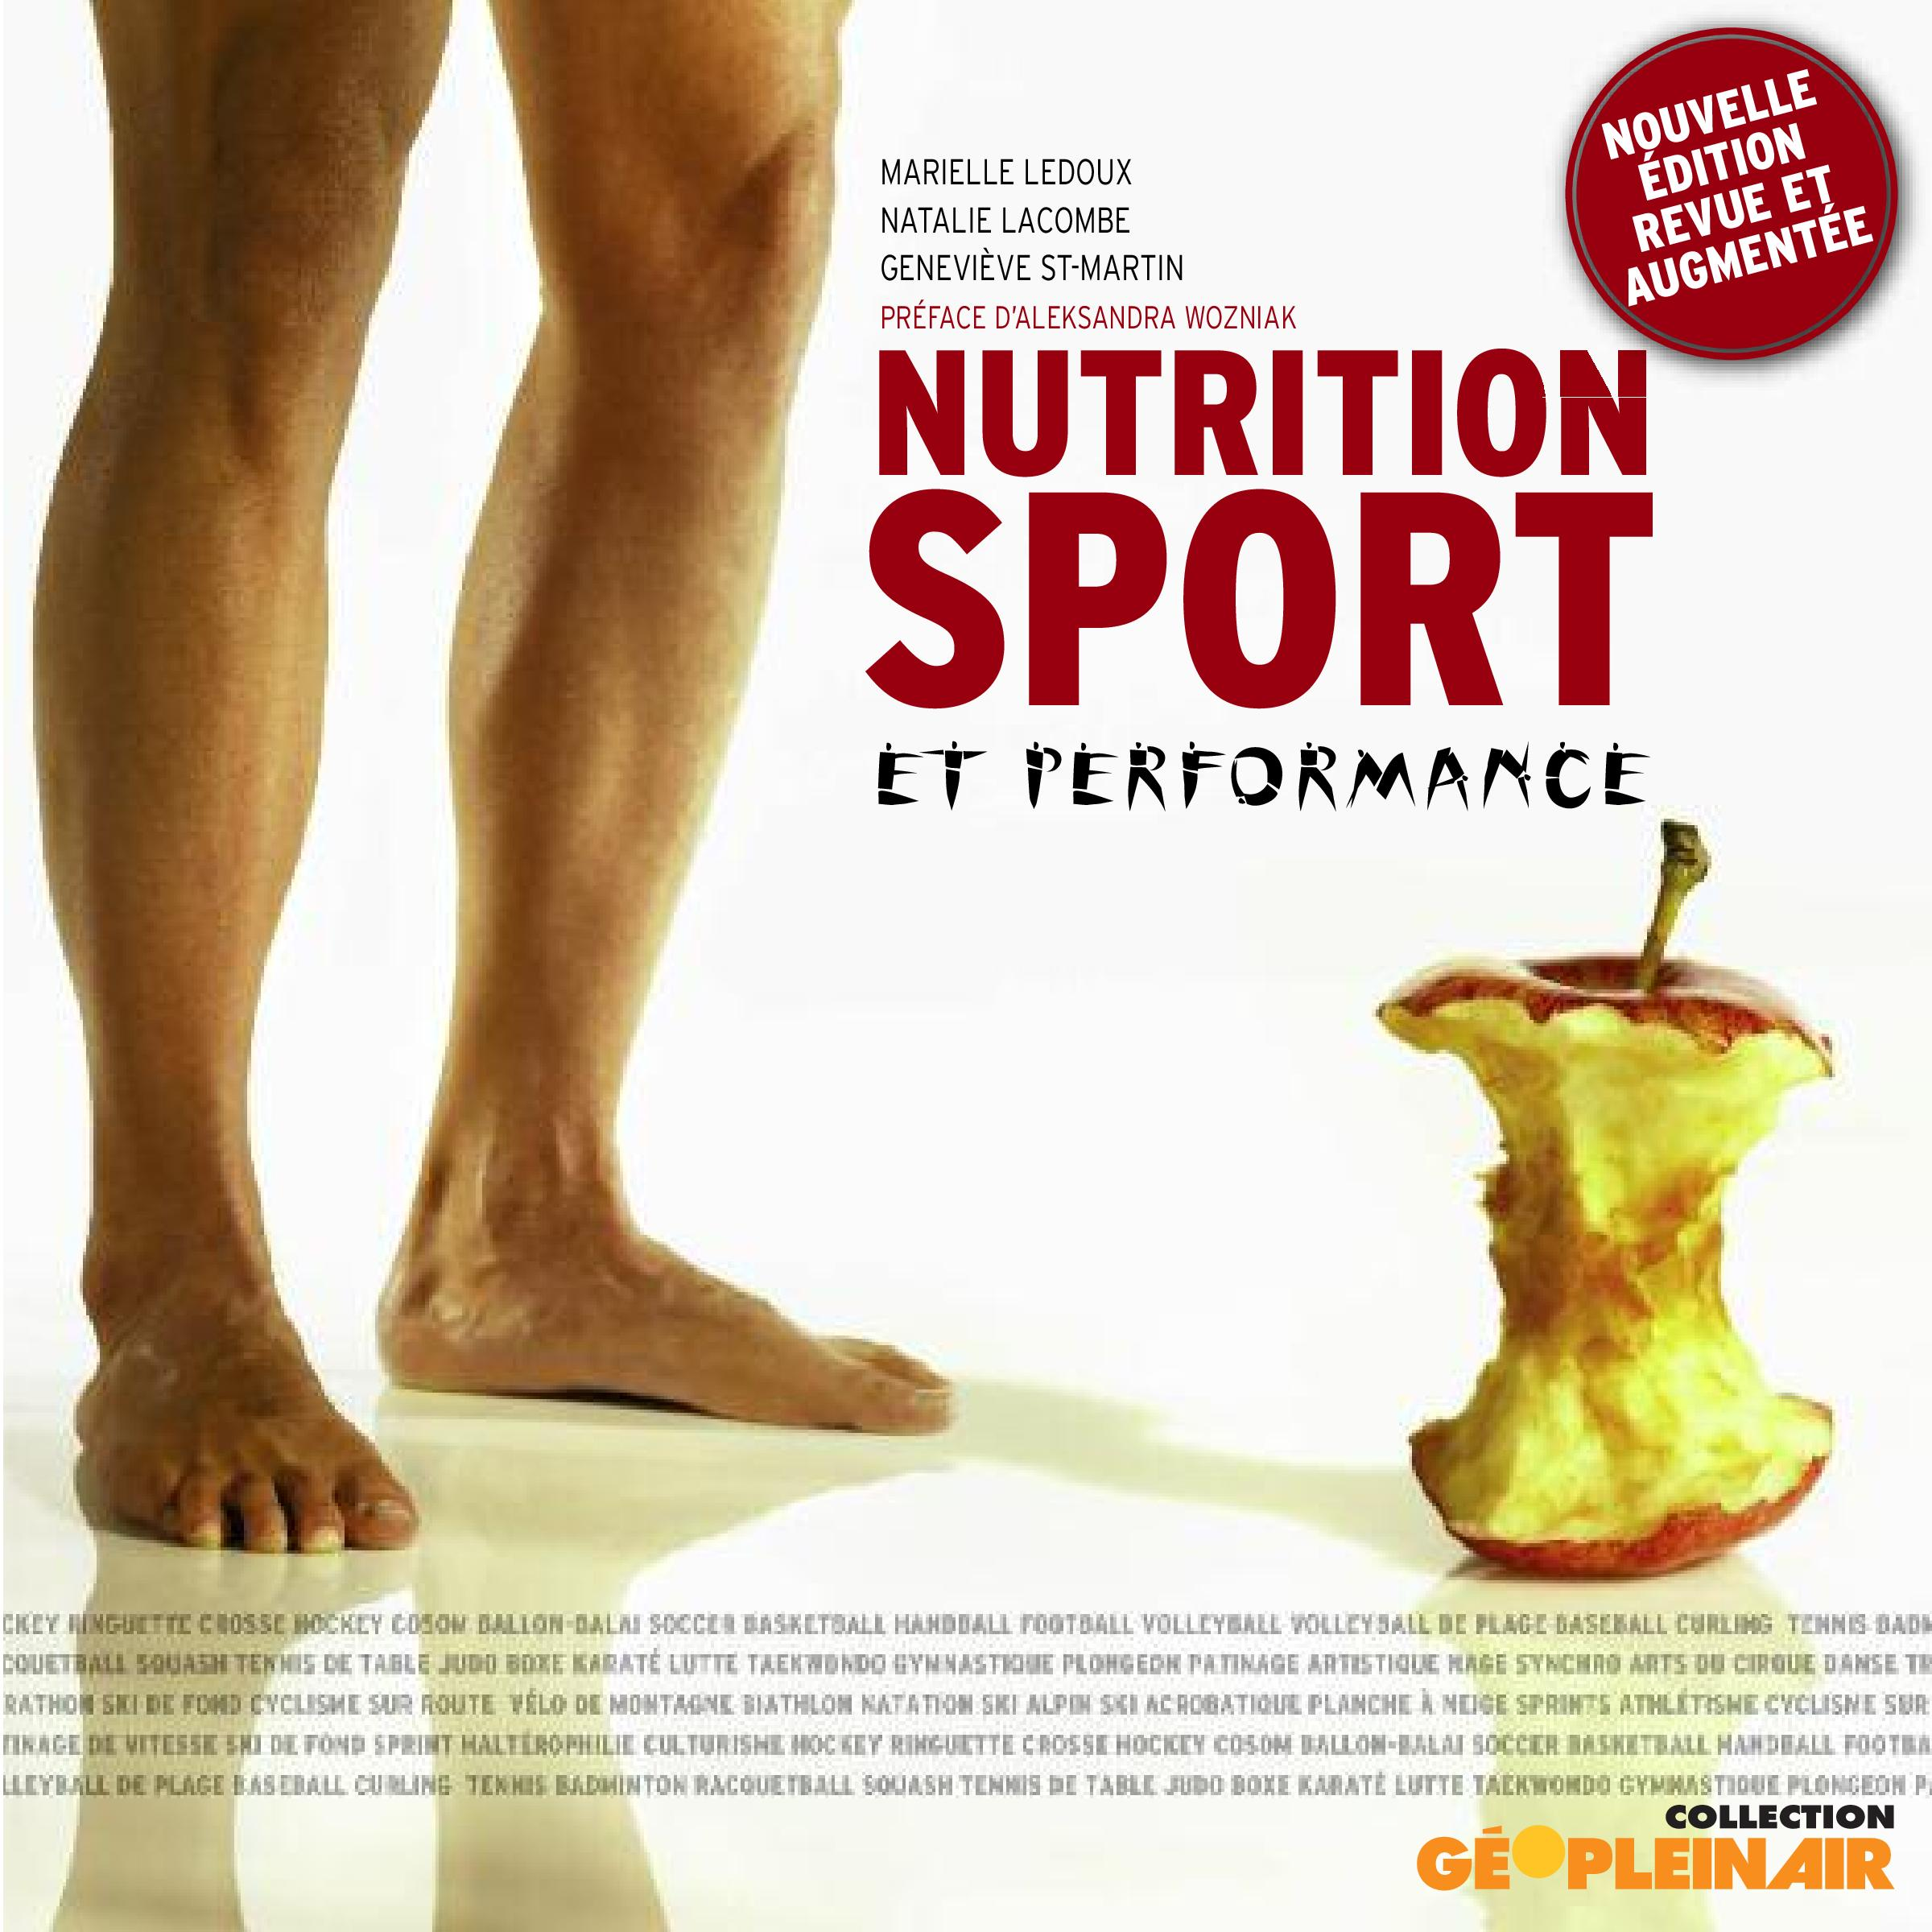 Nutrition Sport et Performance